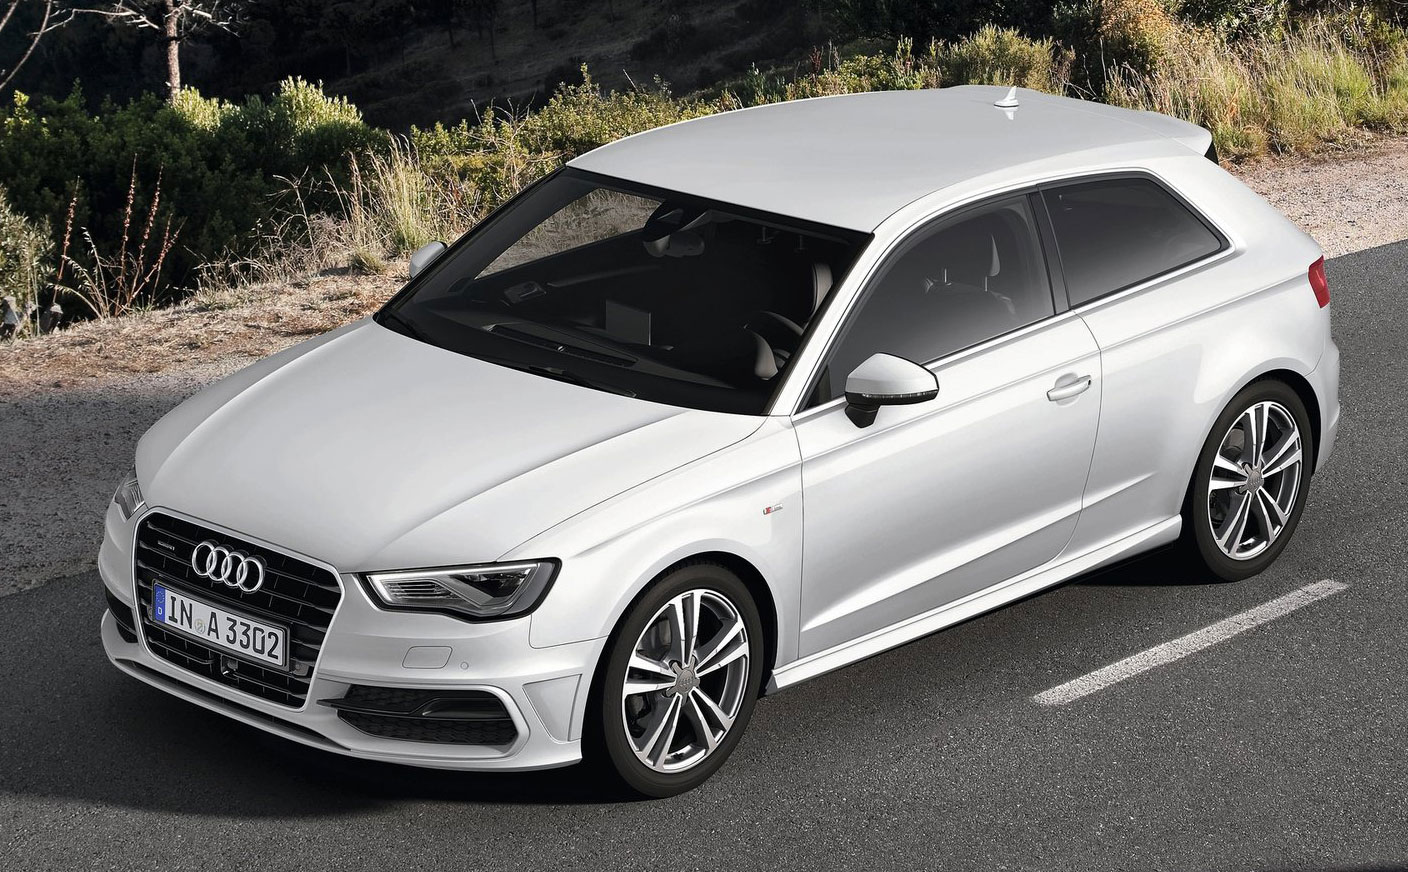 new audi a3 third gen compact makes geneva debut image 92410. Black Bedroom Furniture Sets. Home Design Ideas